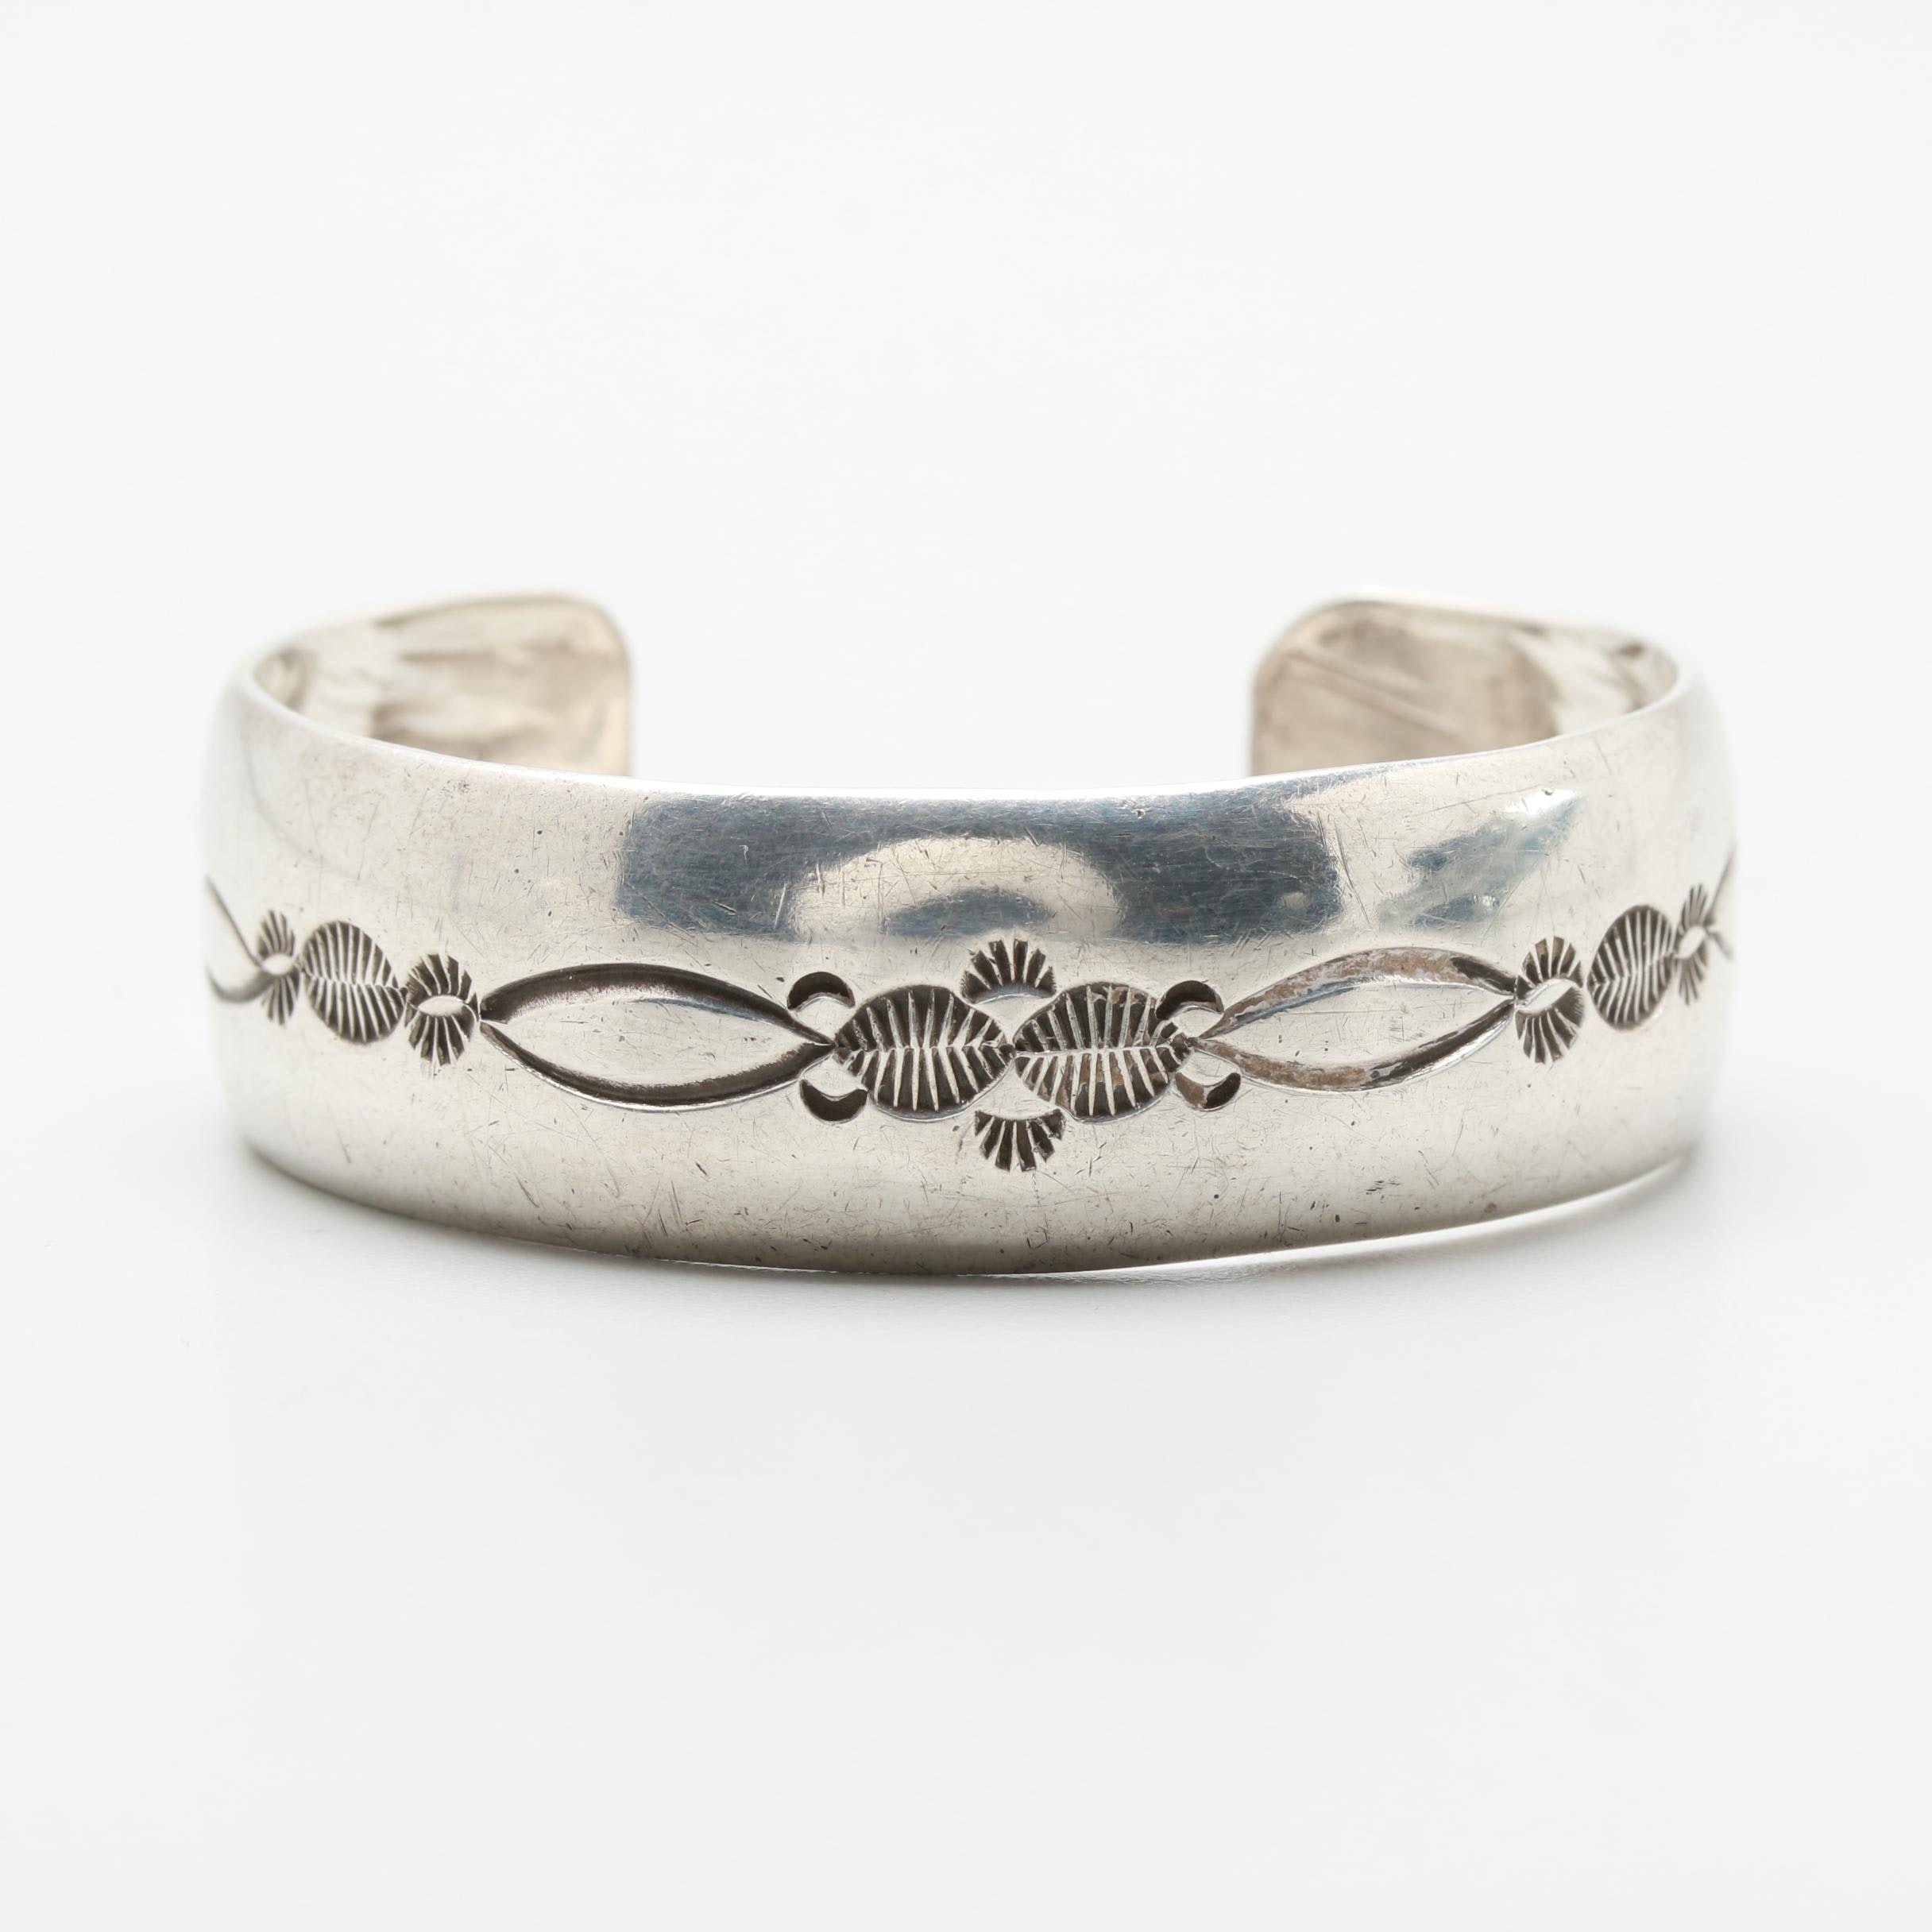 Fred Brown Navajo Sterling Silver Cuff Bracelet